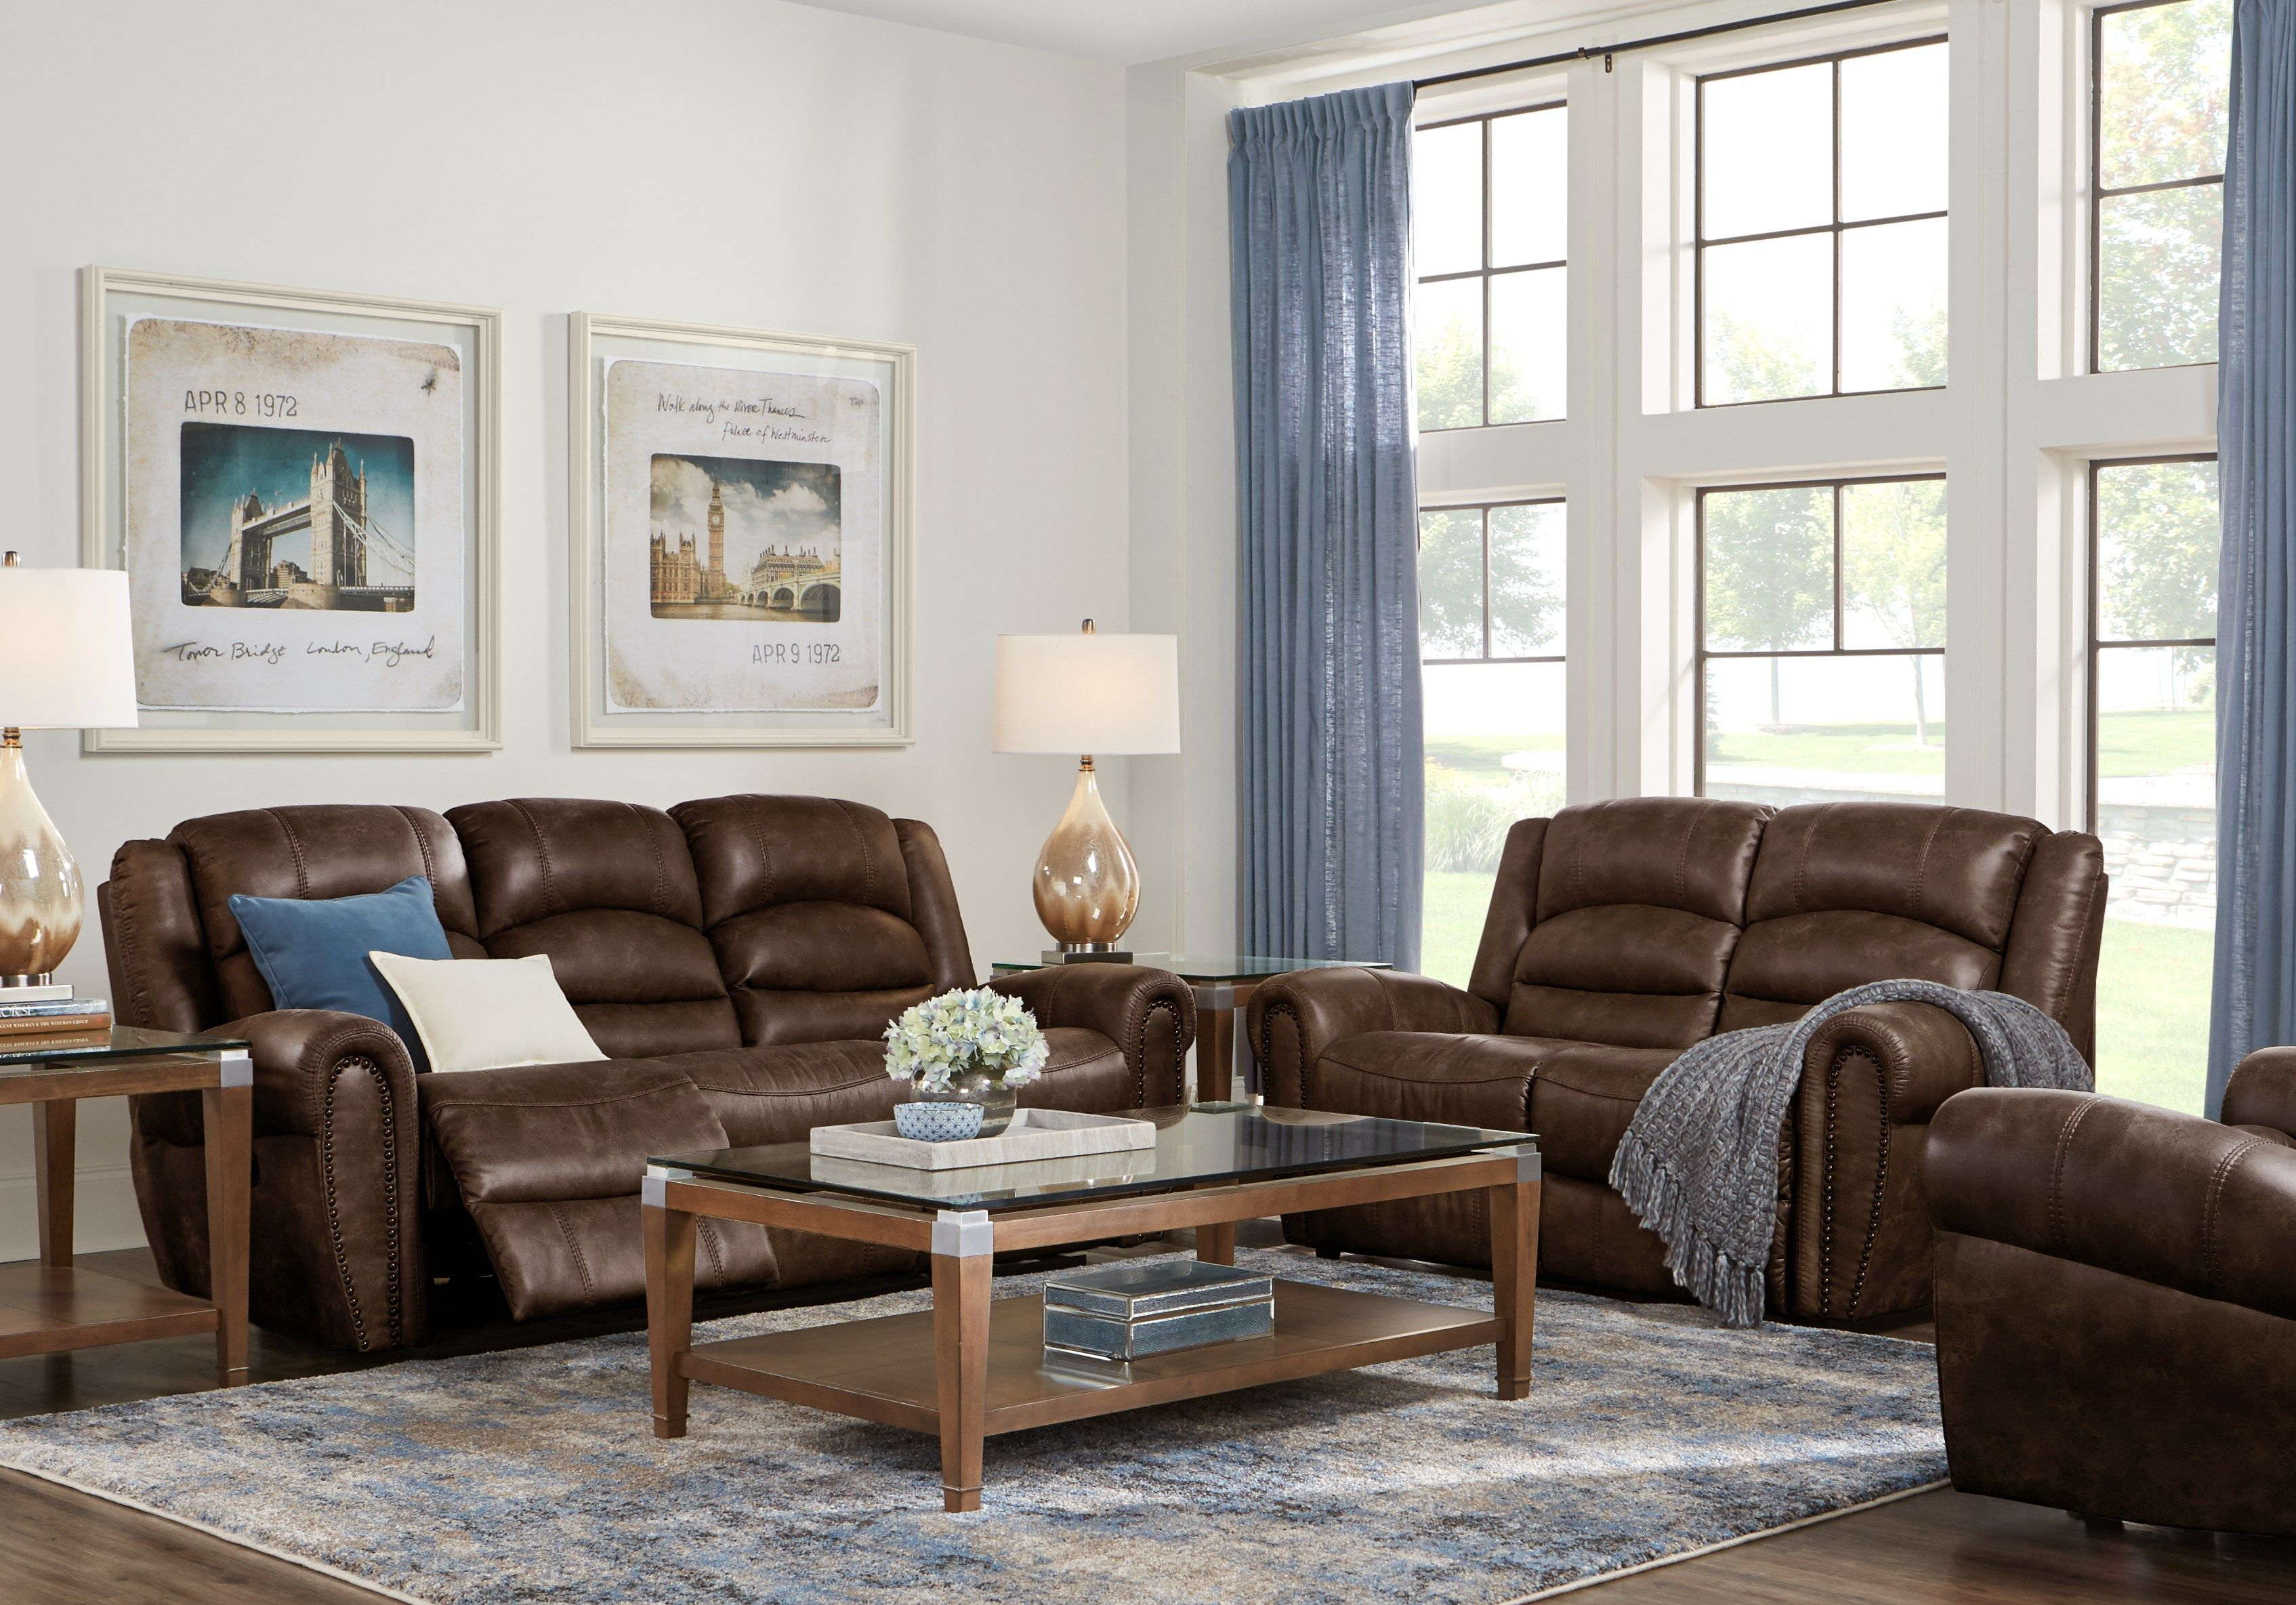 Pleasing Morristown Brown 5 Pc Living Room With Reclining Sofa In Onthecornerstone Fun Painted Chair Ideas Images Onthecornerstoneorg